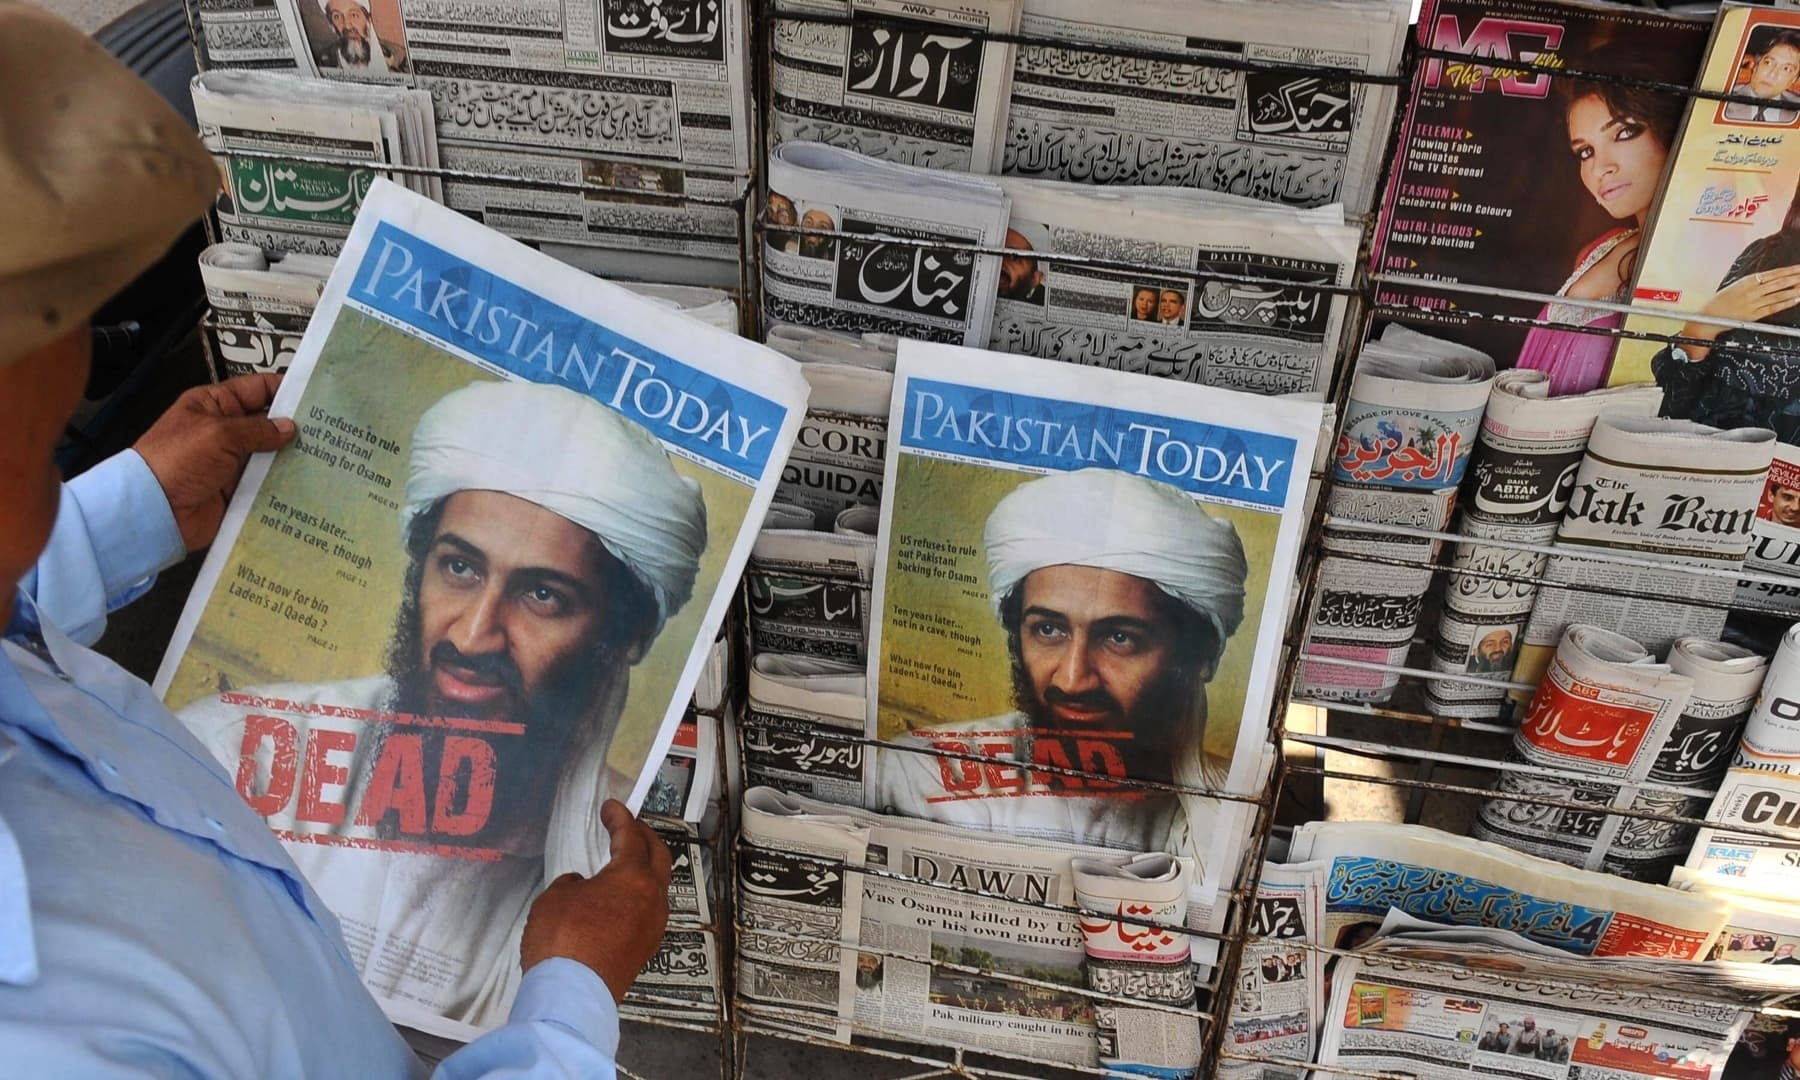 In this file photograph taken on May 3, 2011, a man reads a newspaper with the front page displaying news of the death of Osama bin Laden at a stall in Lahore. — AFP